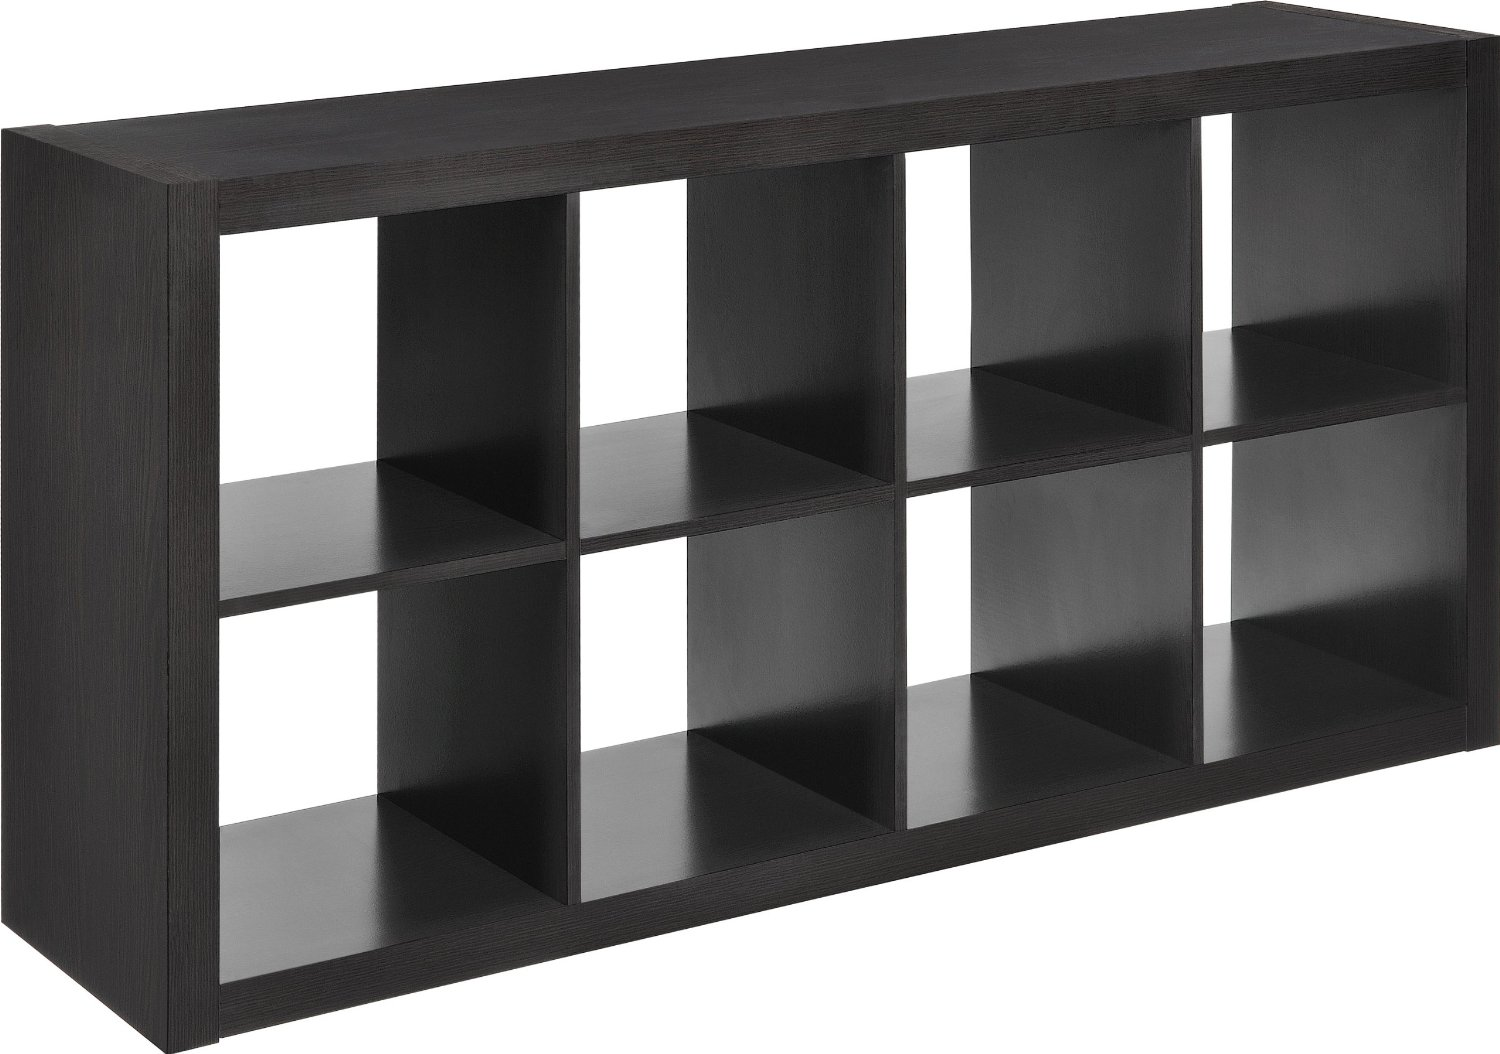 quality large capacity vinyl record shelving on a budget. Black Bedroom Furniture Sets. Home Design Ideas